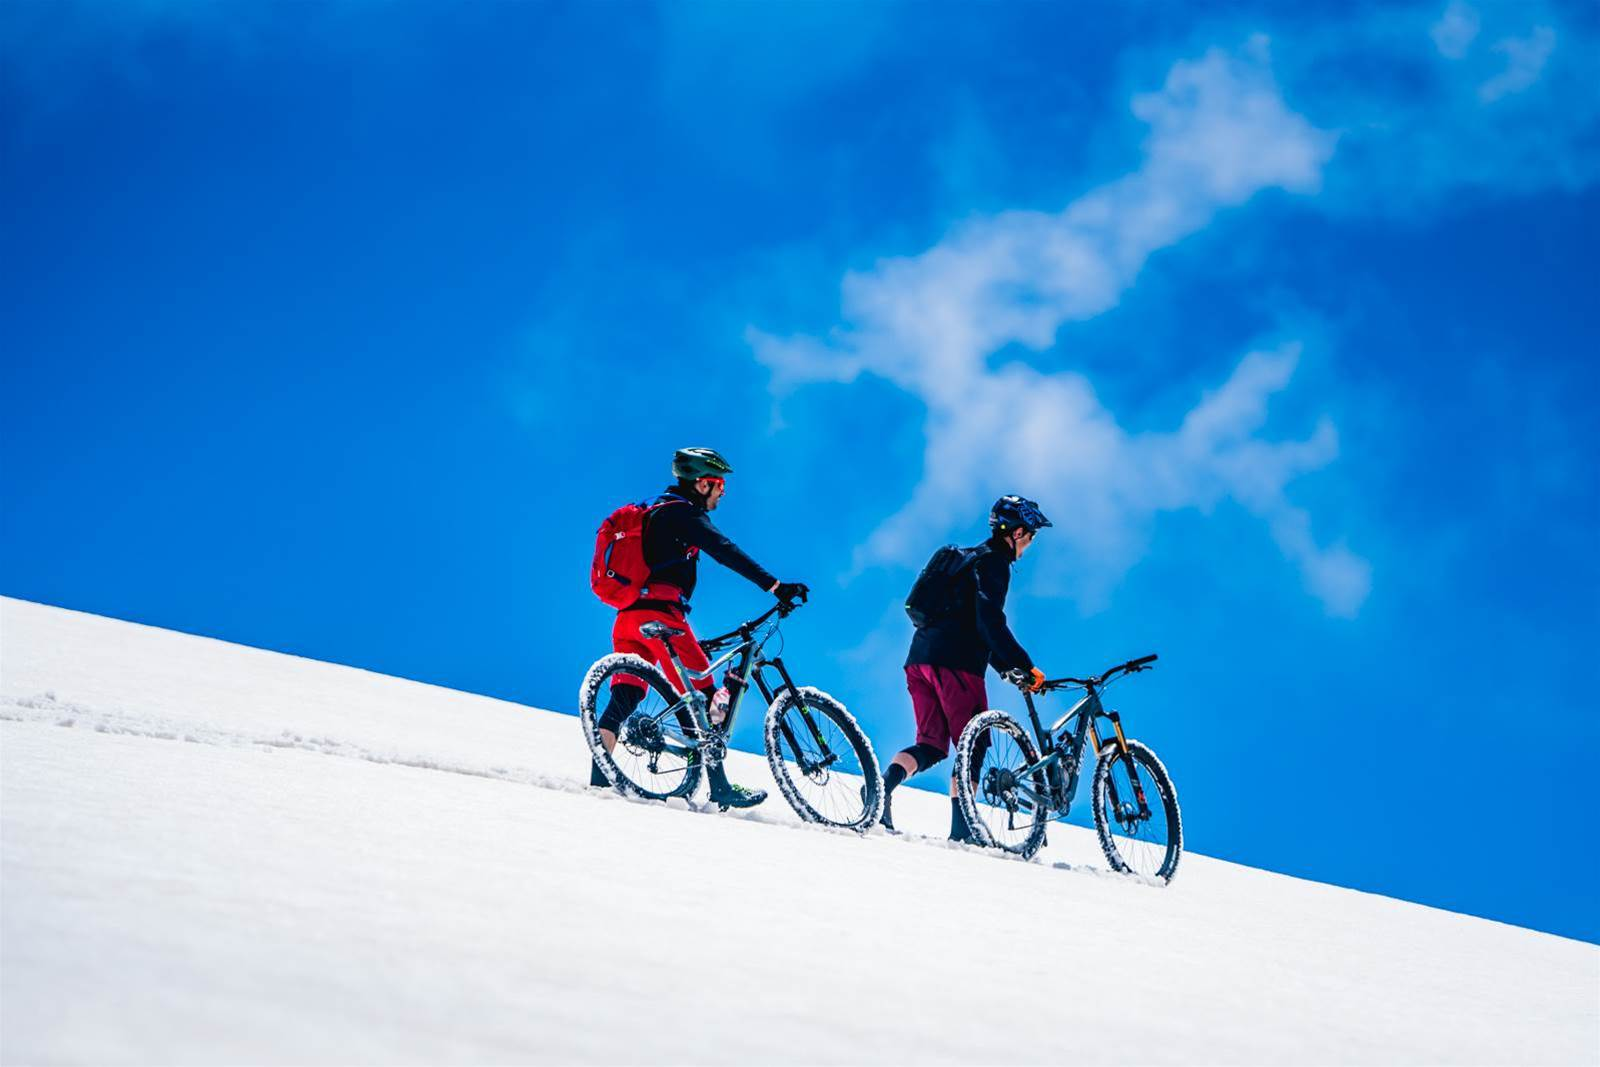 Bucket List alpine mountain bike trips